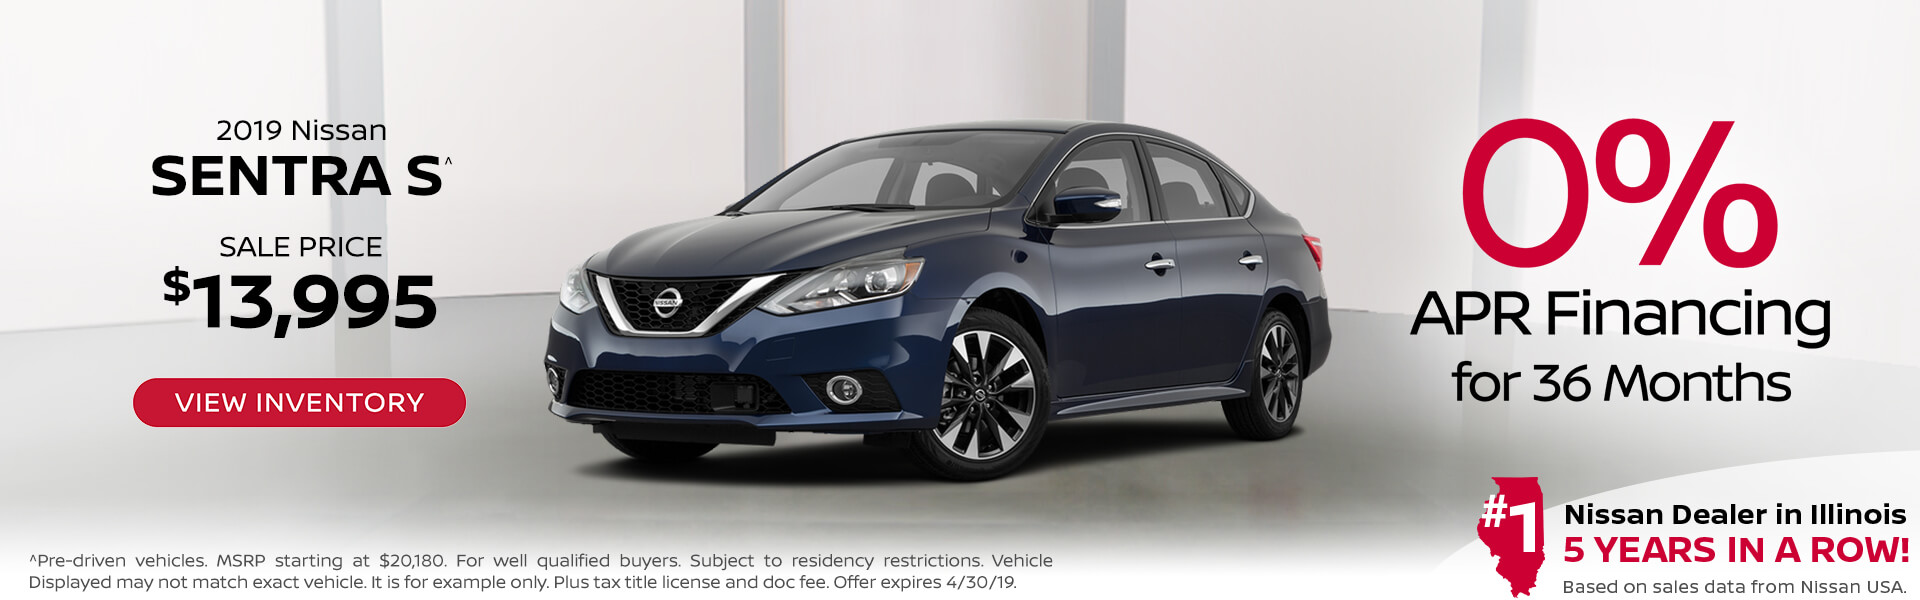 Special Deals At M Lady Nissan Crystal Lake I Save Big With Specials